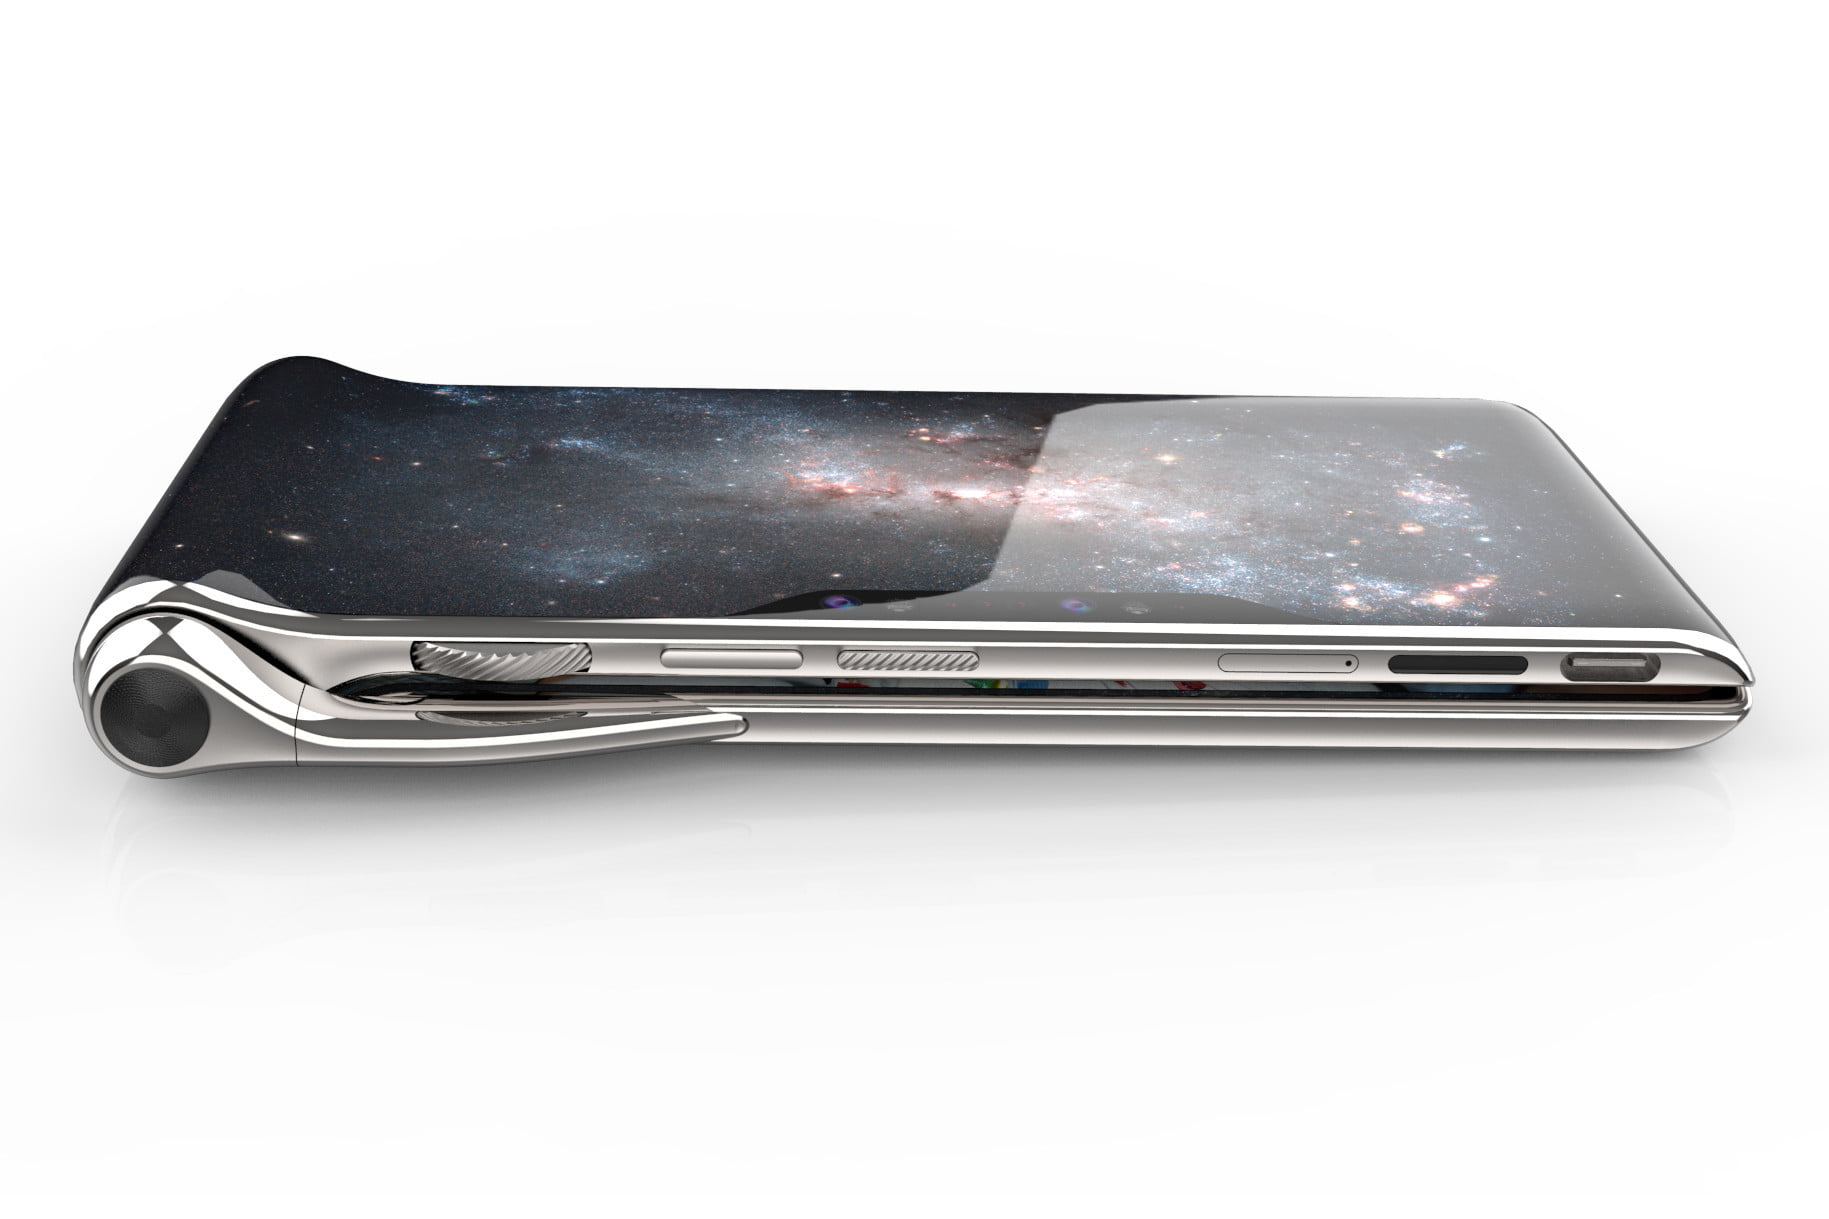 Turing's HubblePhone Looks Crazy, Costs $2,750, And Launches In 2020